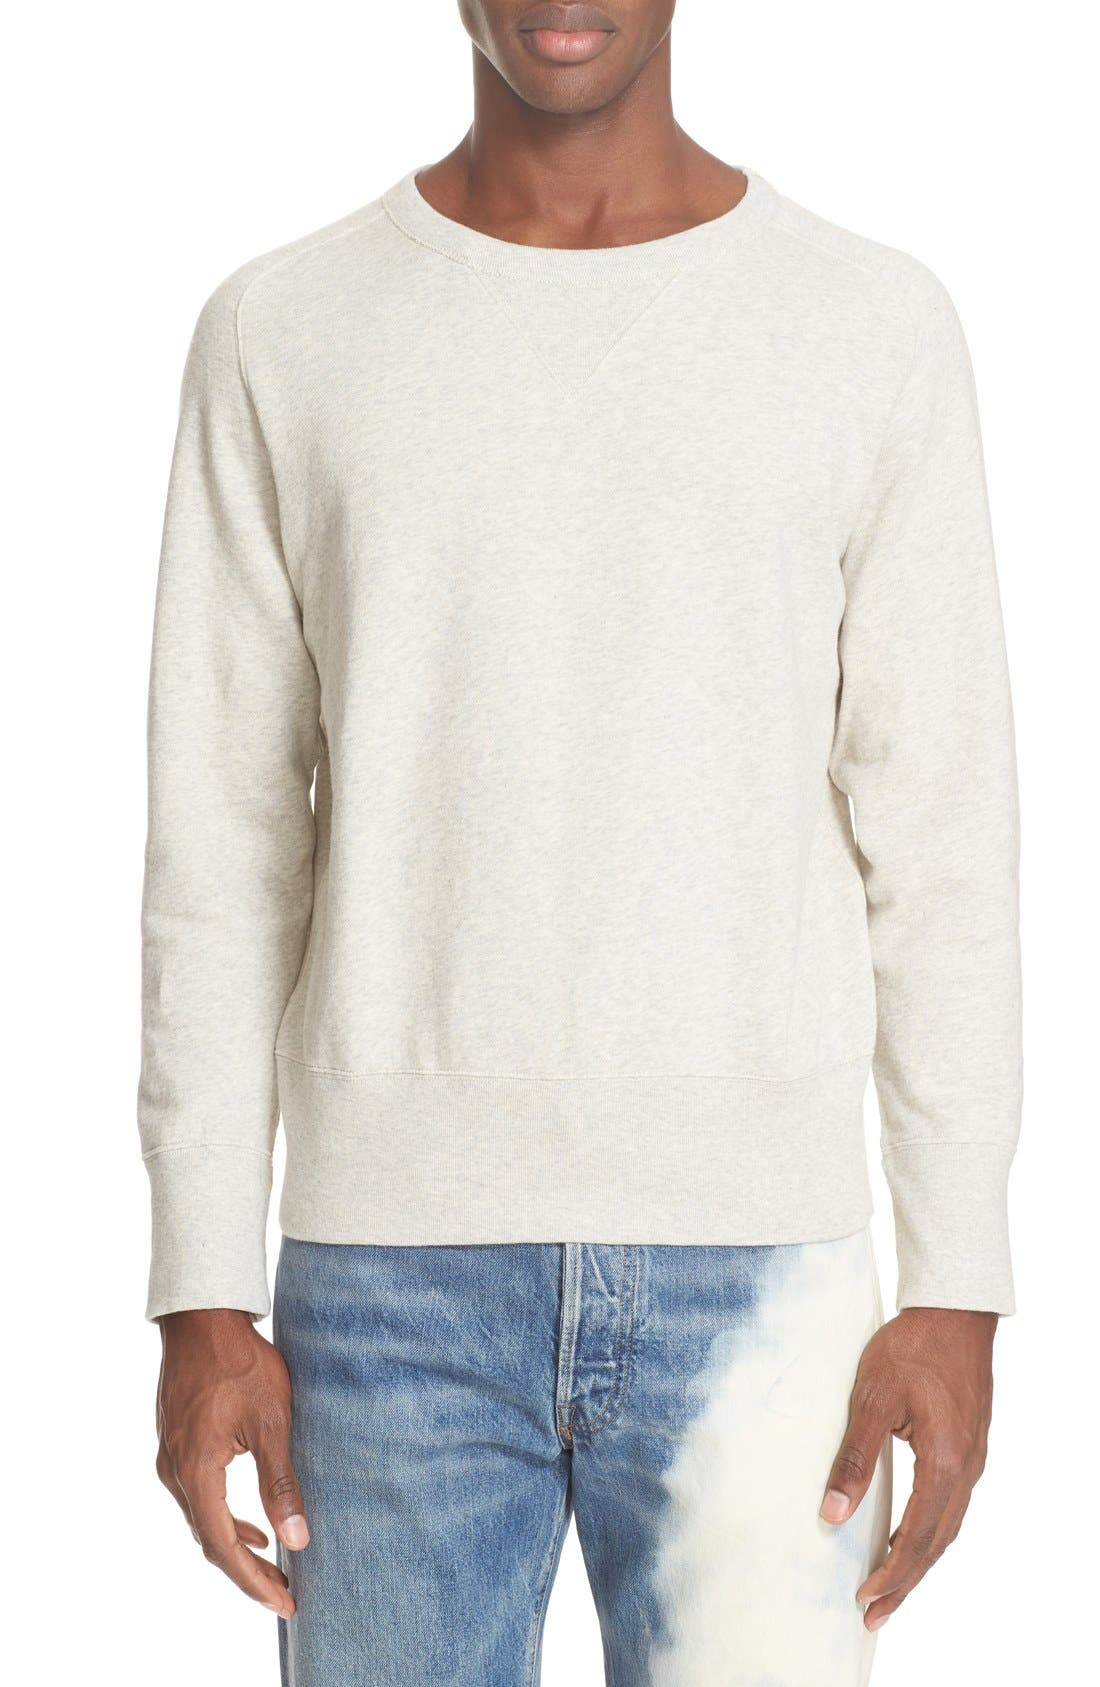 Bay Meadows Sweatshirt,                         Main,                         color, 100